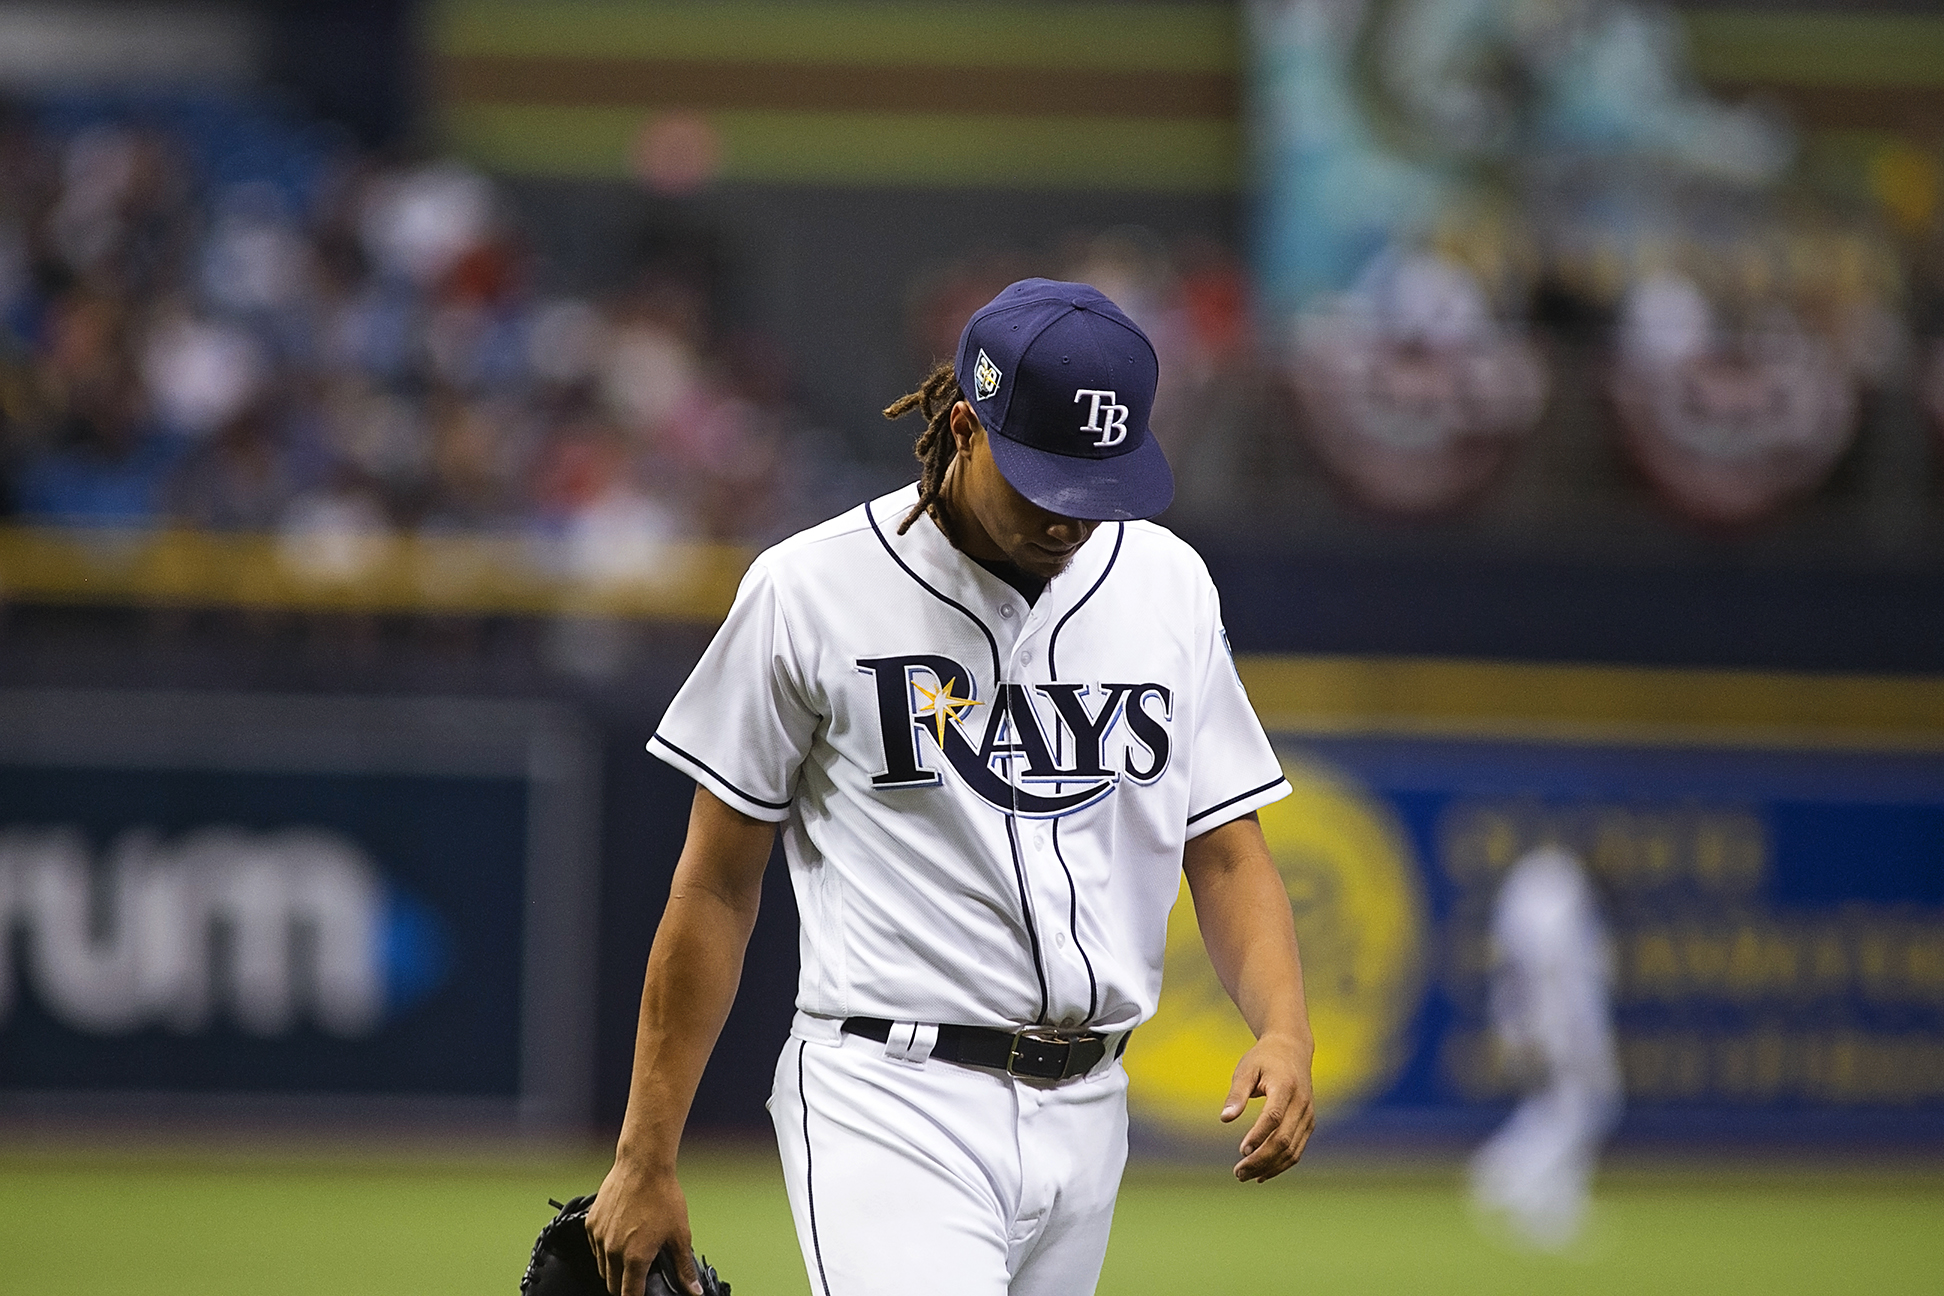 Archer fell to 3-4 on the season for Rays./CARMEN MANDATO